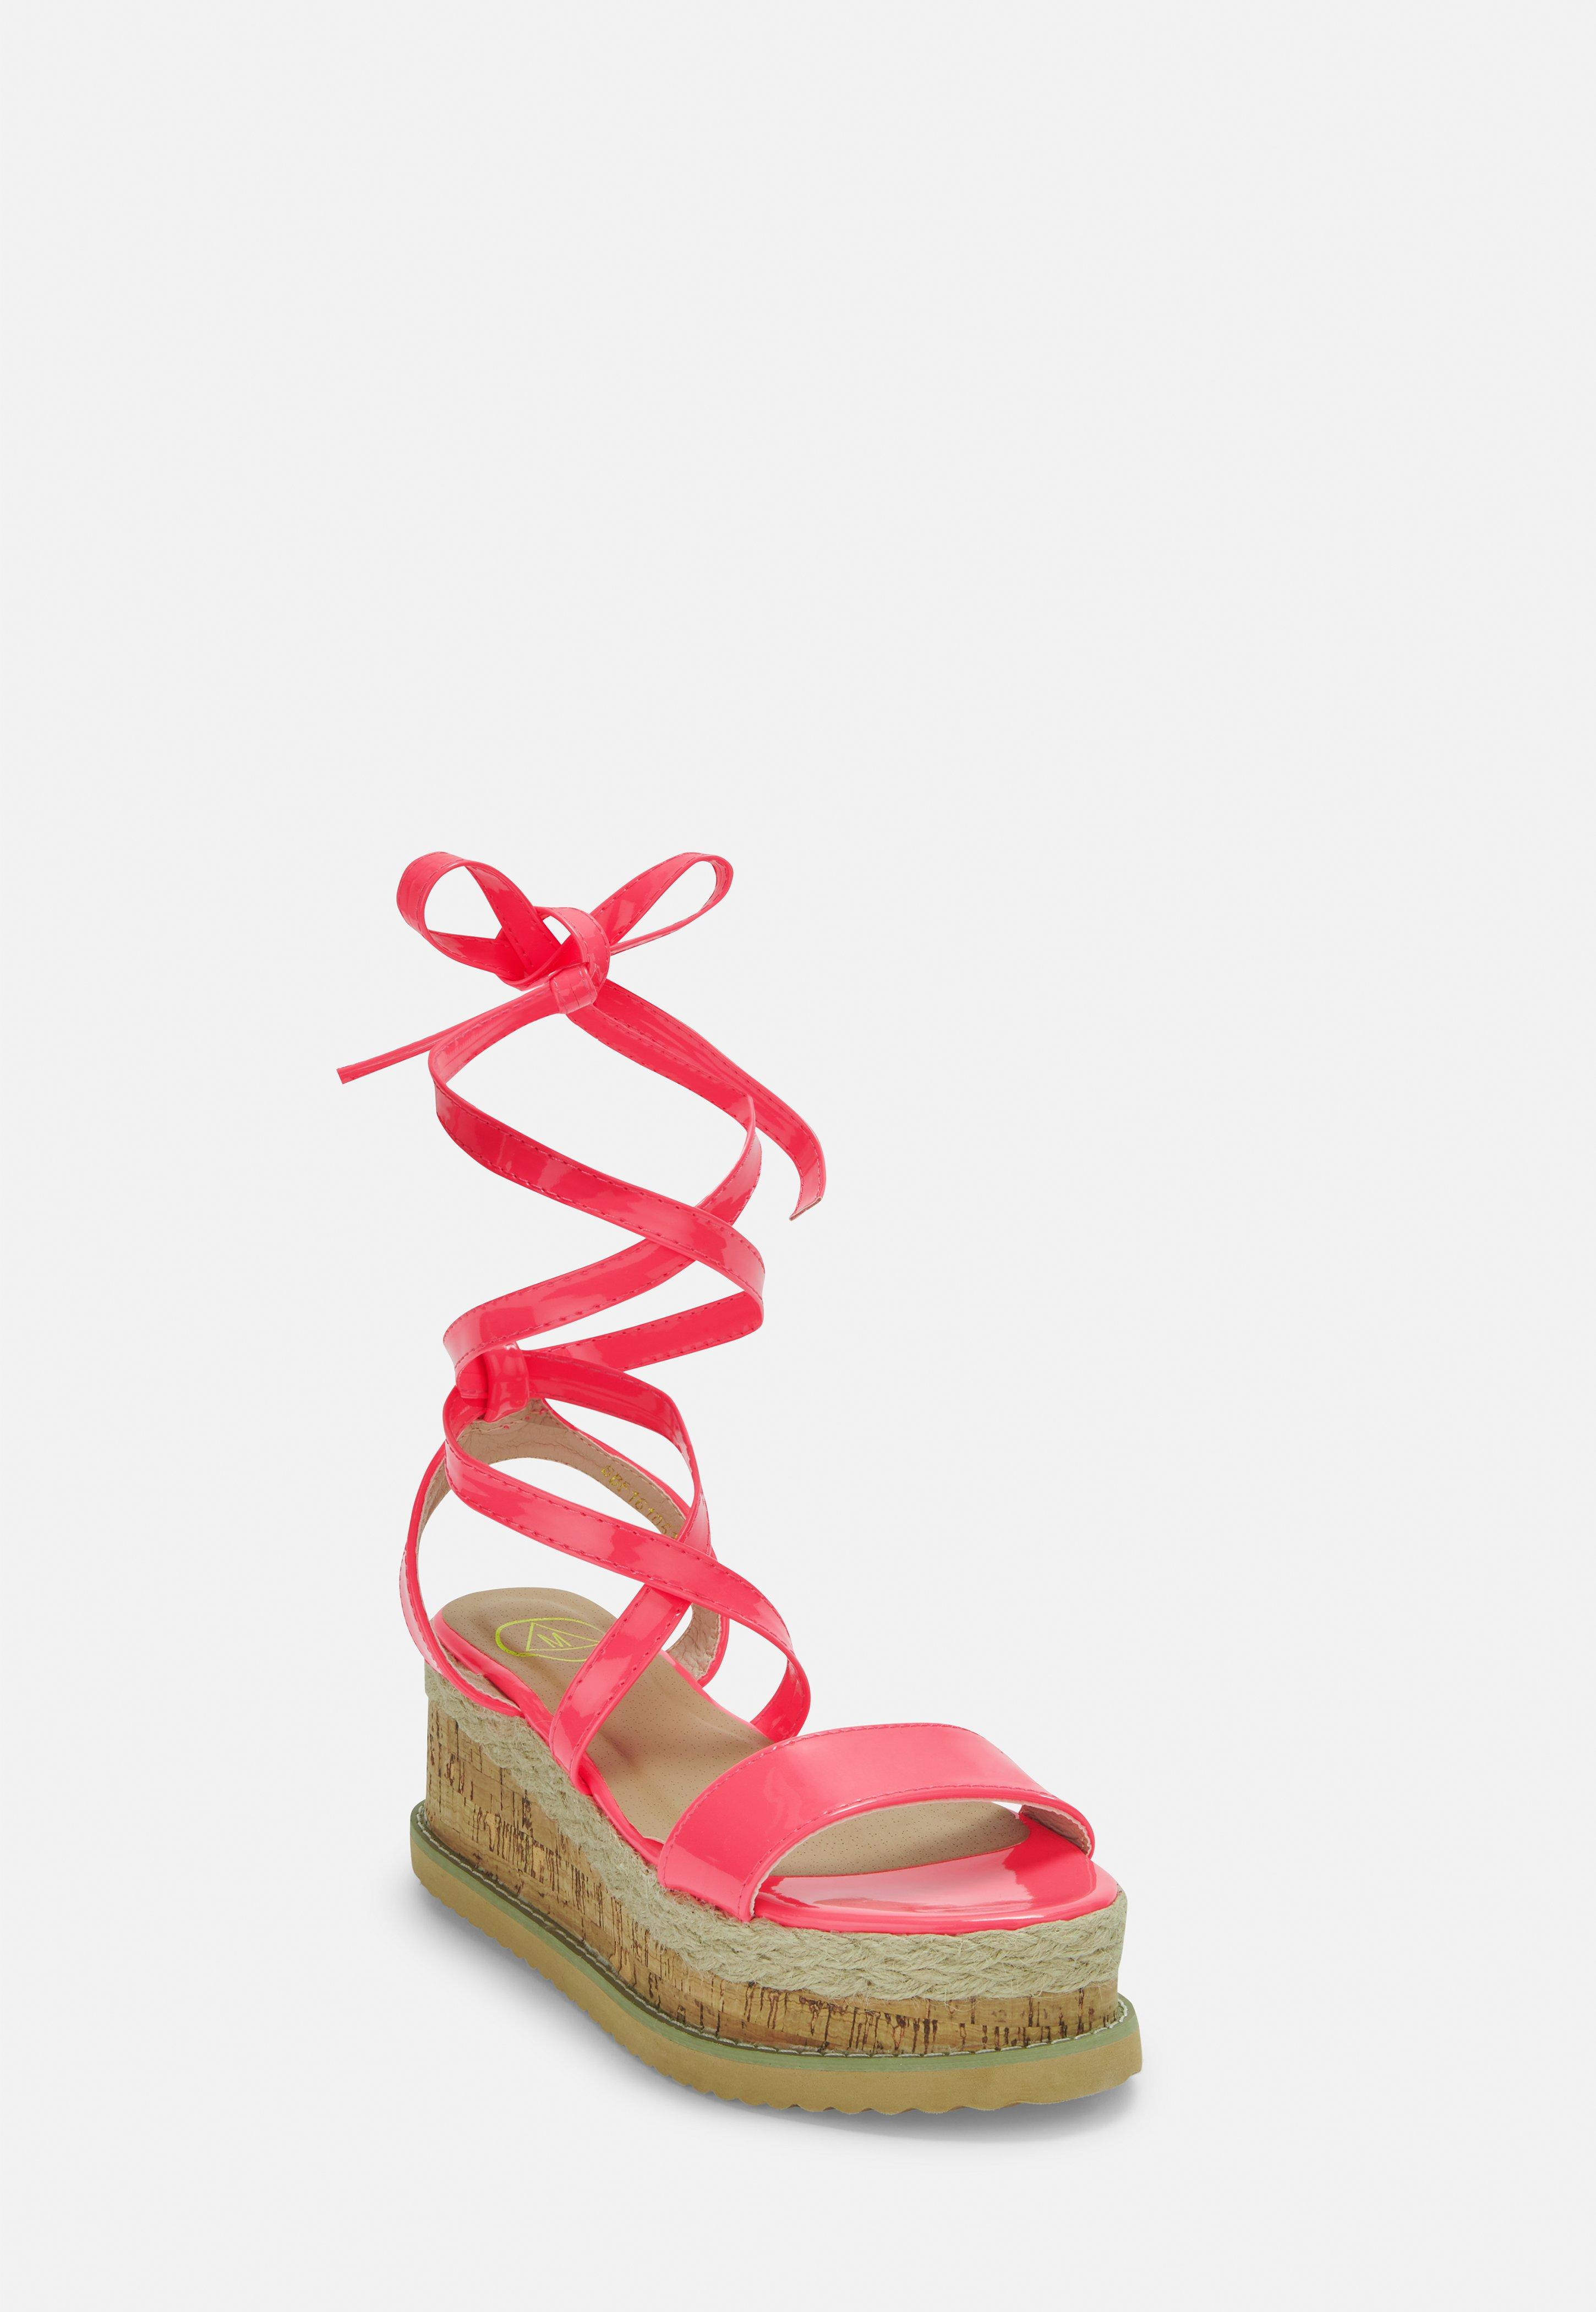 4b8929e2c8e9 Sandals UK - Womens Sandals Online - Flip Flops- Missguided